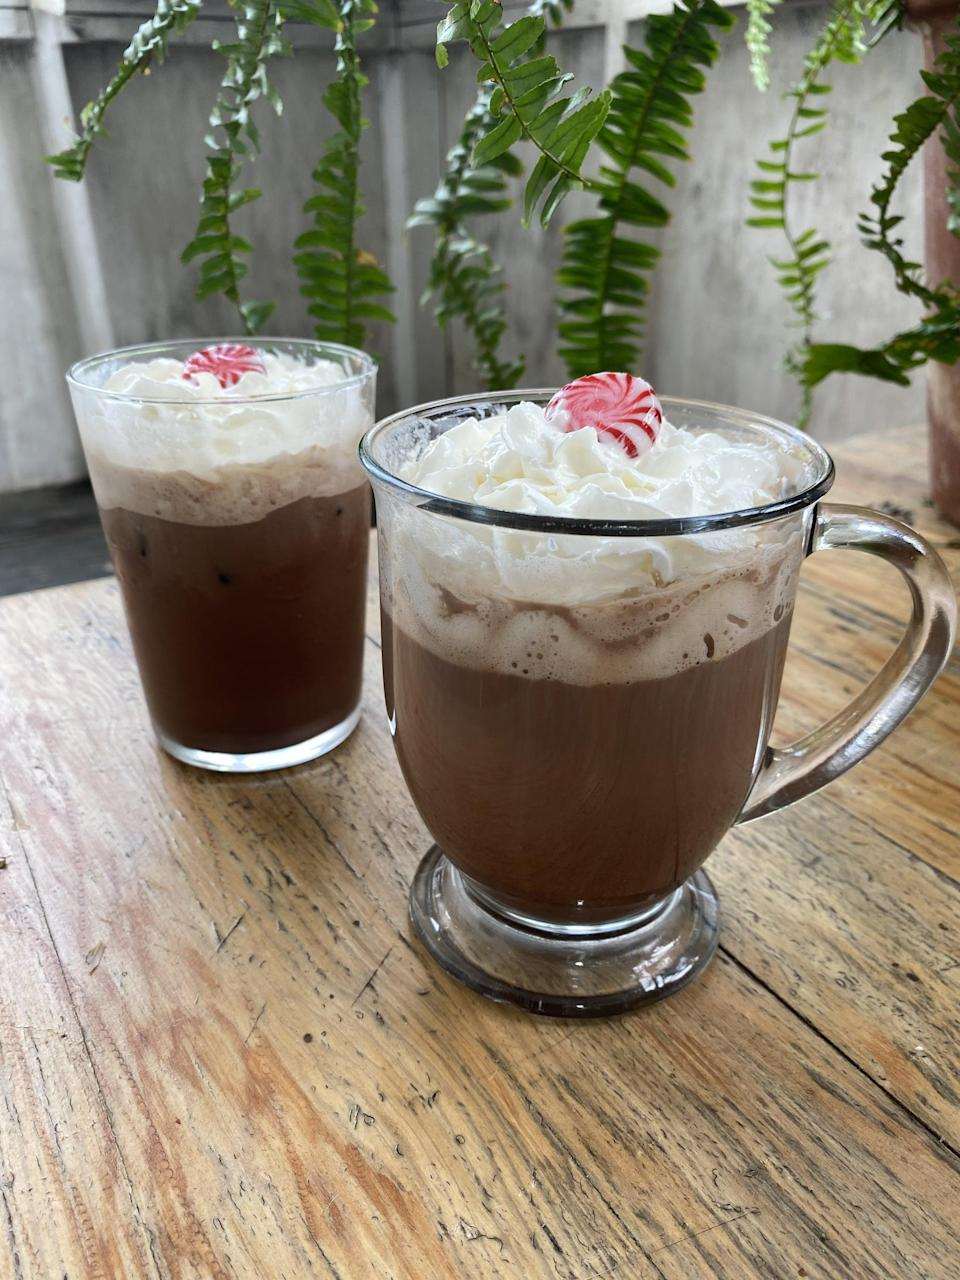 """<p>Made with strong coffee, steamed milk, mocha sauce, and peppermint-flavored syrup, it doesn't get much better than this latte.</p> <p><strong>Original Starbucks Drink:</strong> <a href=""""https://www.starbucks.com/menu/product/496/hot?parent=%2Fdrinks%2Fhot-coffees%2Fmochas"""" class=""""link rapid-noclick-resp"""" rel=""""nofollow noopener"""" target=""""_blank"""" data-ylk=""""slk:peppermint mocha latte"""">peppermint mocha latte</a></p> <p><strong>Homemade Version:</strong> <a href=""""https://www.popsugar.com/food/starbucks-peppermint-mocha-recipe-47891616"""" class=""""link rapid-noclick-resp"""" rel=""""nofollow noopener"""" target=""""_blank"""" data-ylk=""""slk:peppermint mocha coffee"""">peppermint mocha coffee</a></p>"""